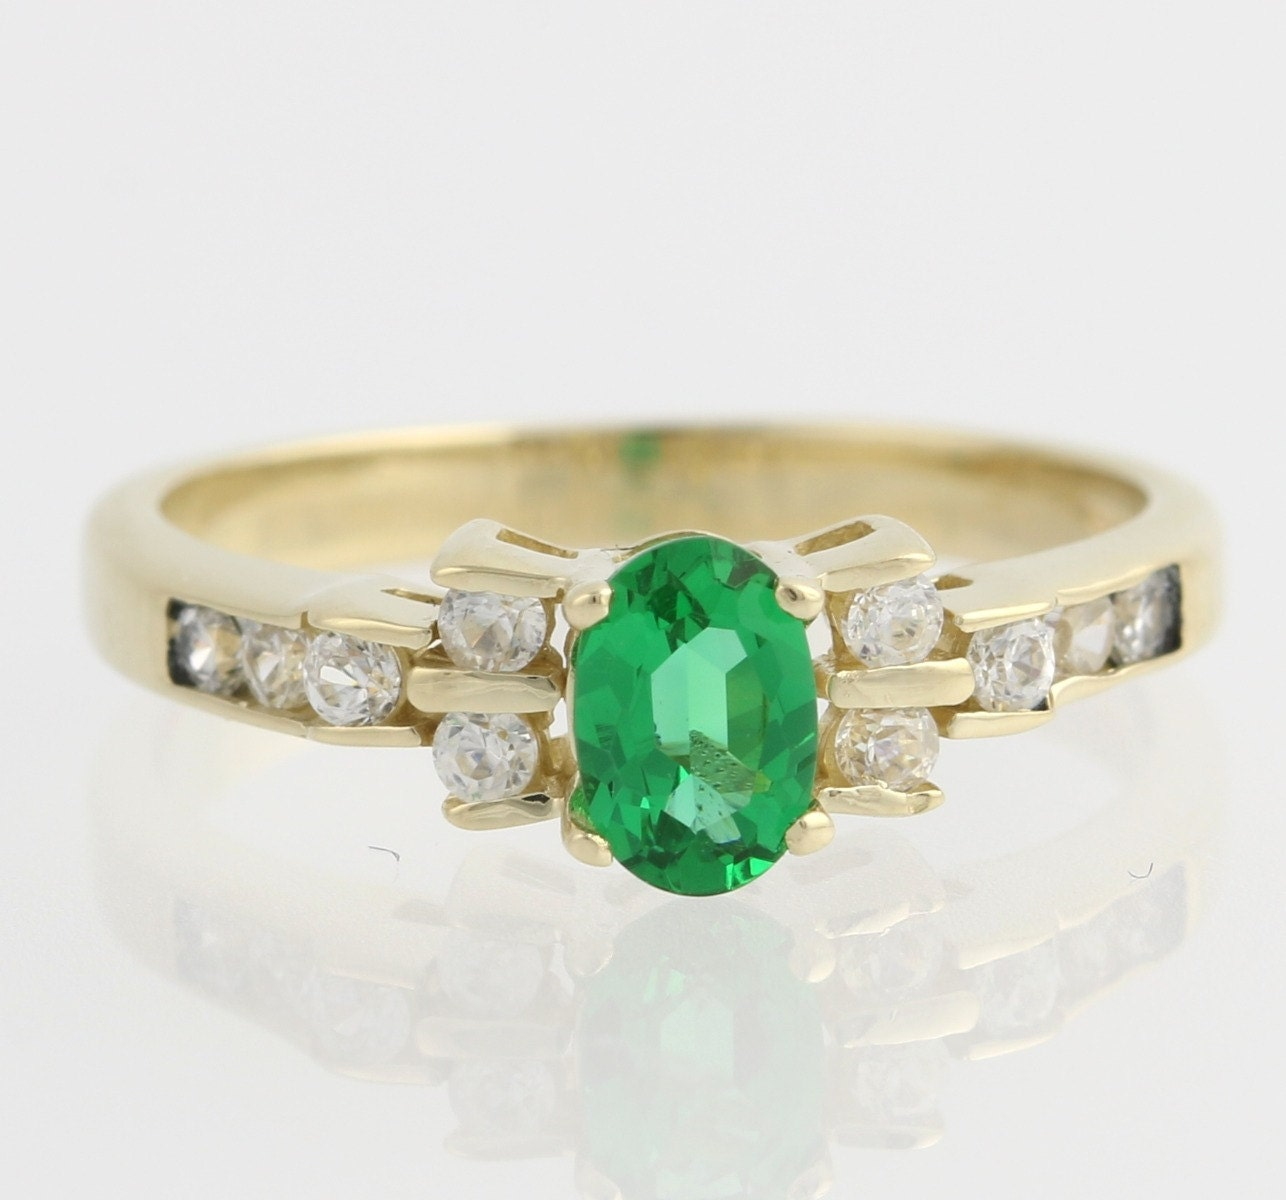 synthetic emerald cz engagement 14k by wilsonbrothers